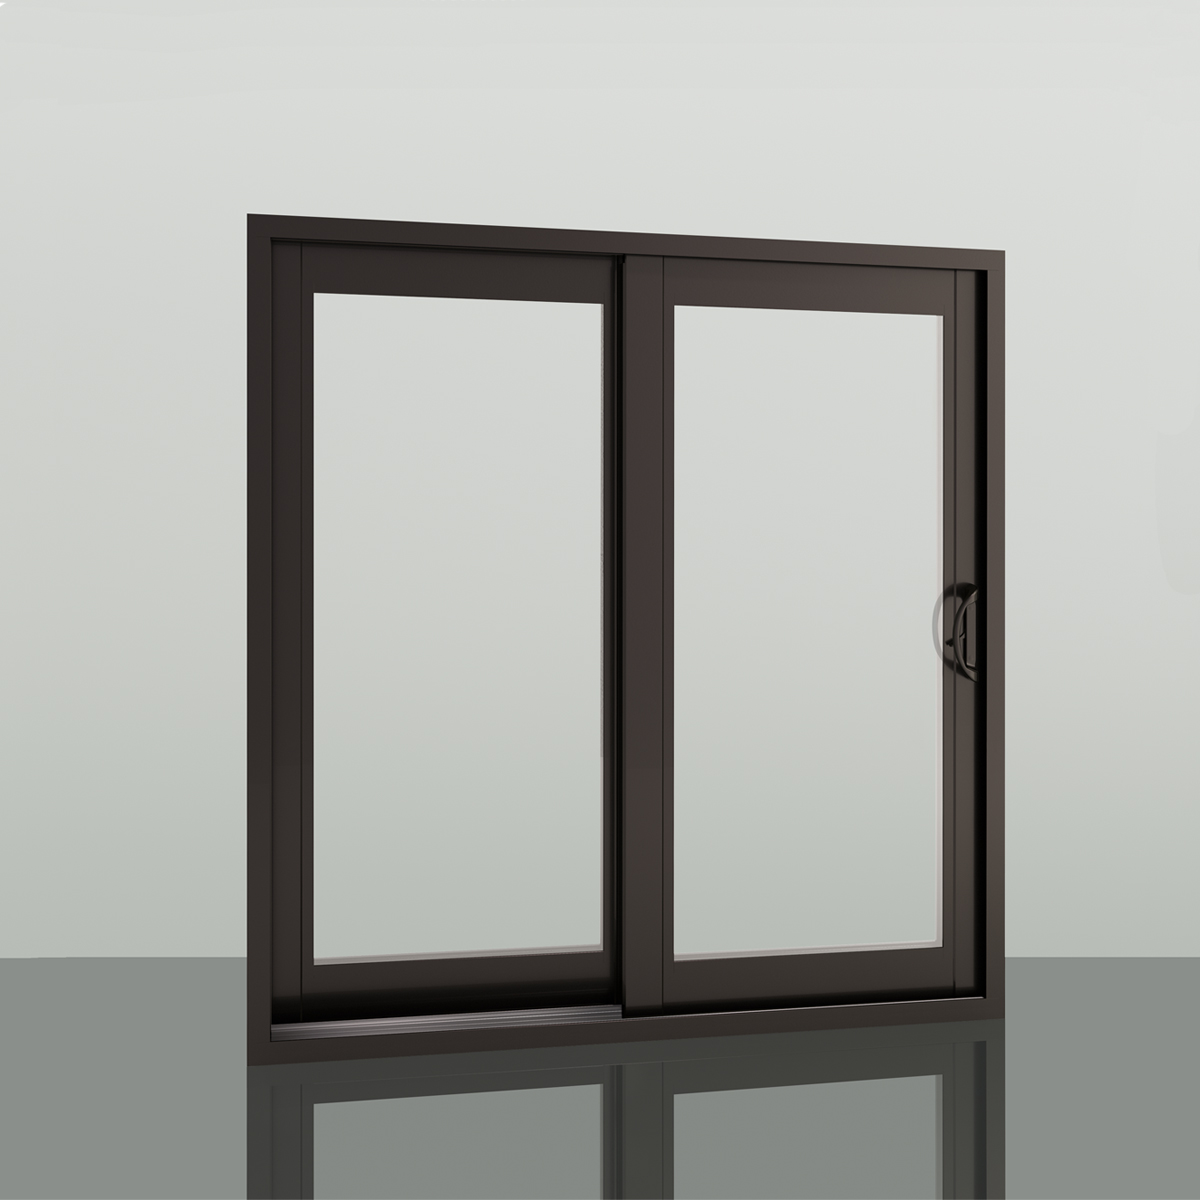 100 Series Sliding Glass Door & Products and Product Information | MI Windows and Doors